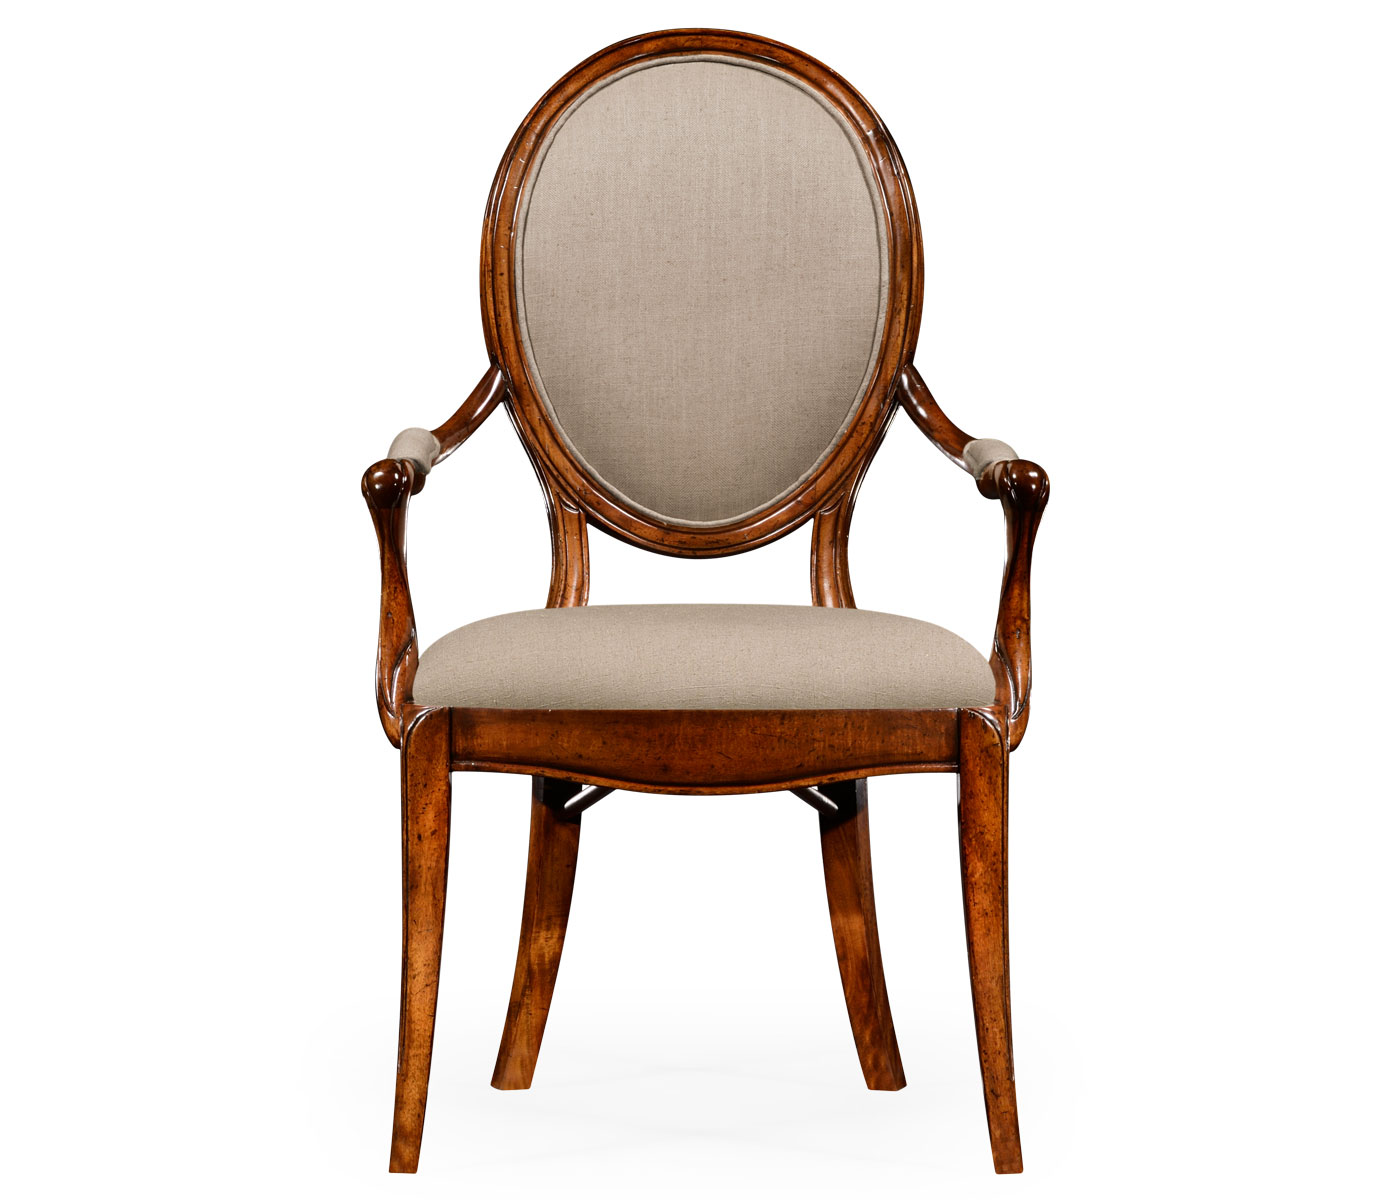 upholstered dining room chairs with arms.  Spoon Back Upholstered Dining Chair Arm